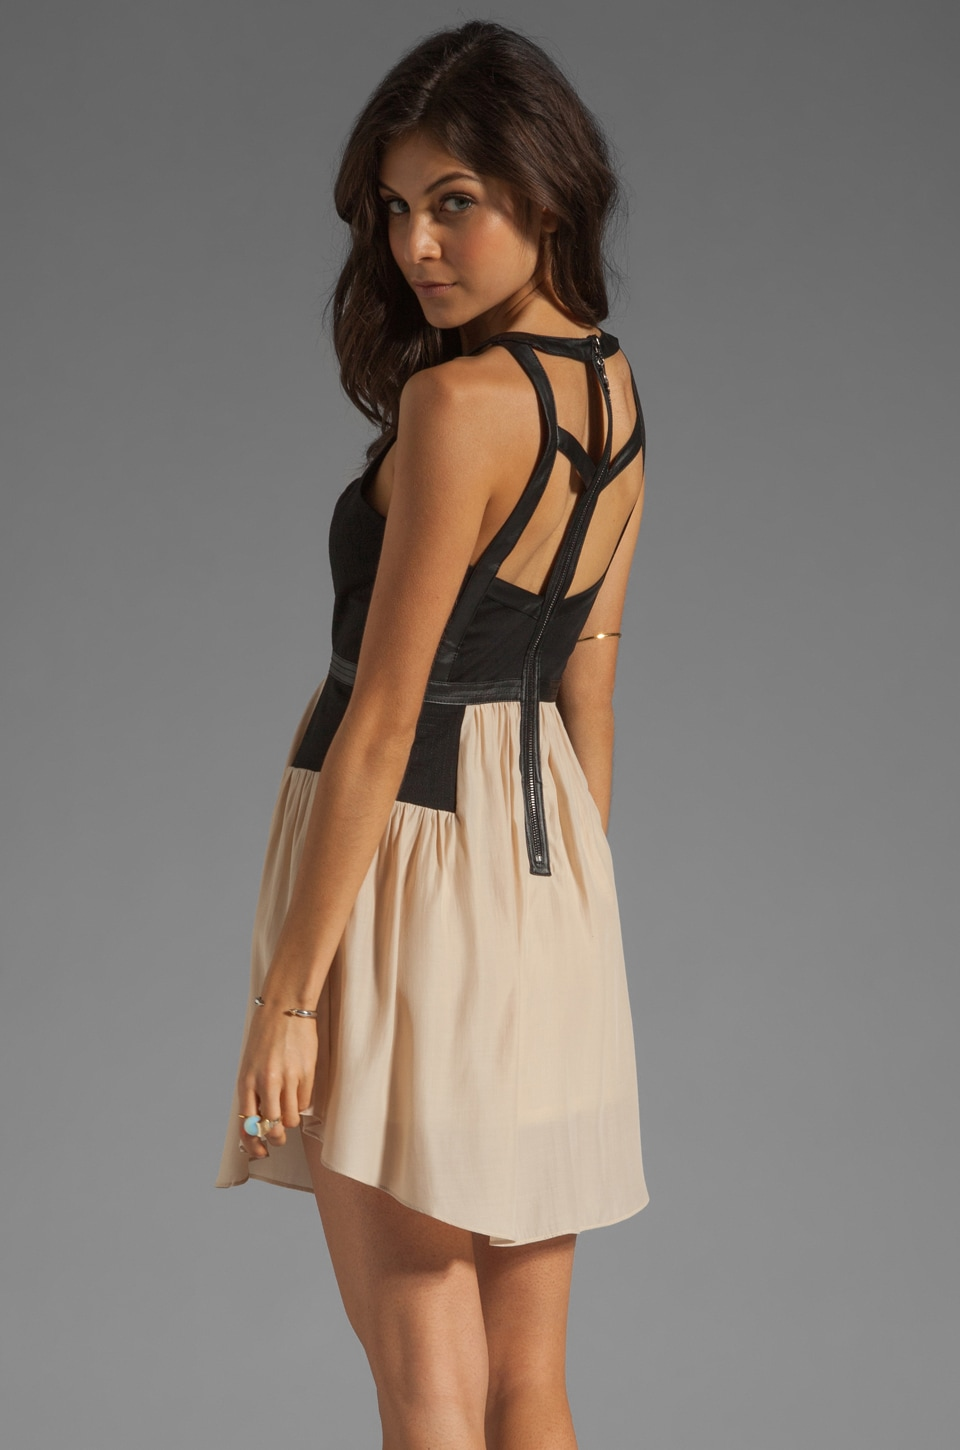 bless'ed are the meek My Prerogative Dress in in Black/Nude